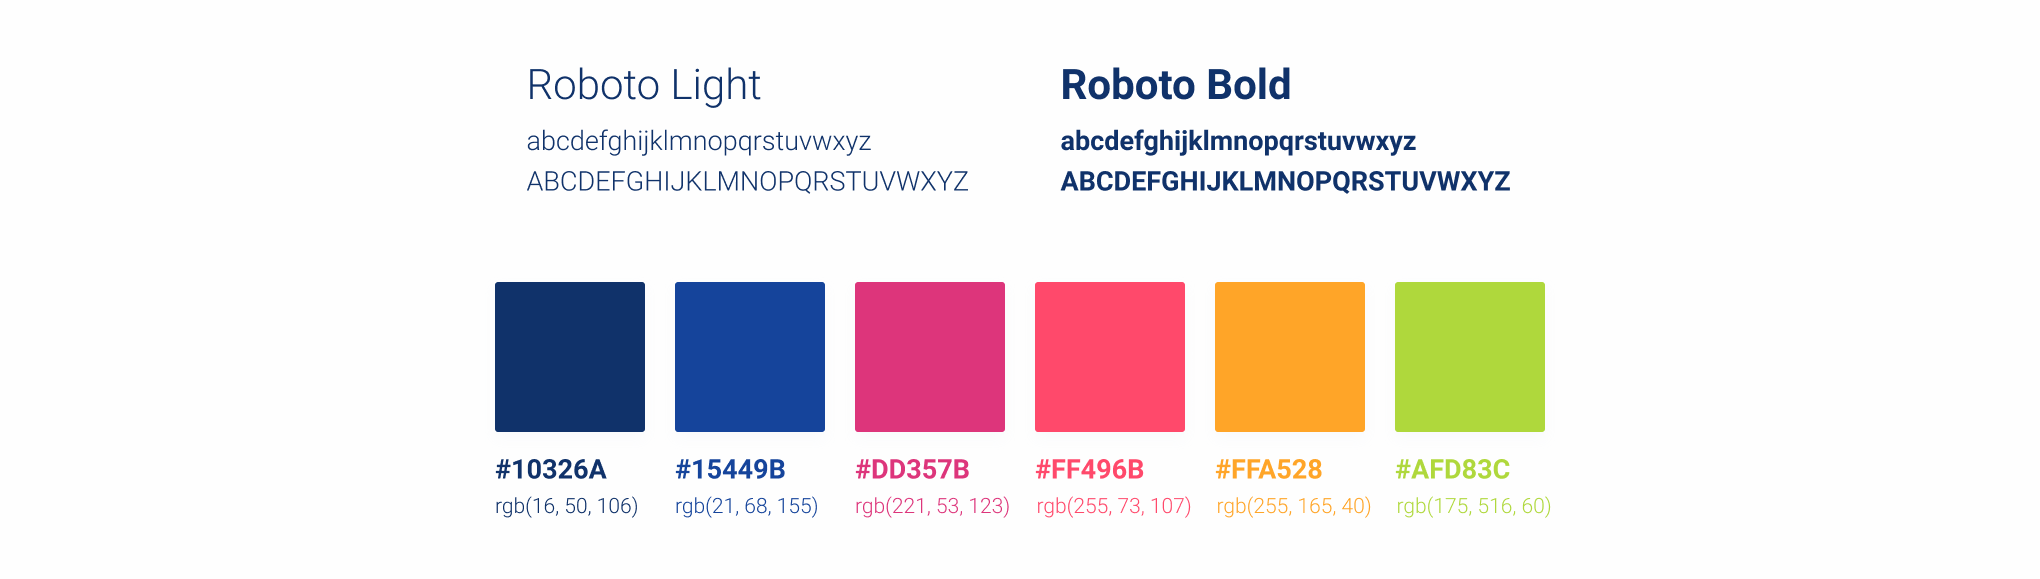 Styleguide fonts and colors